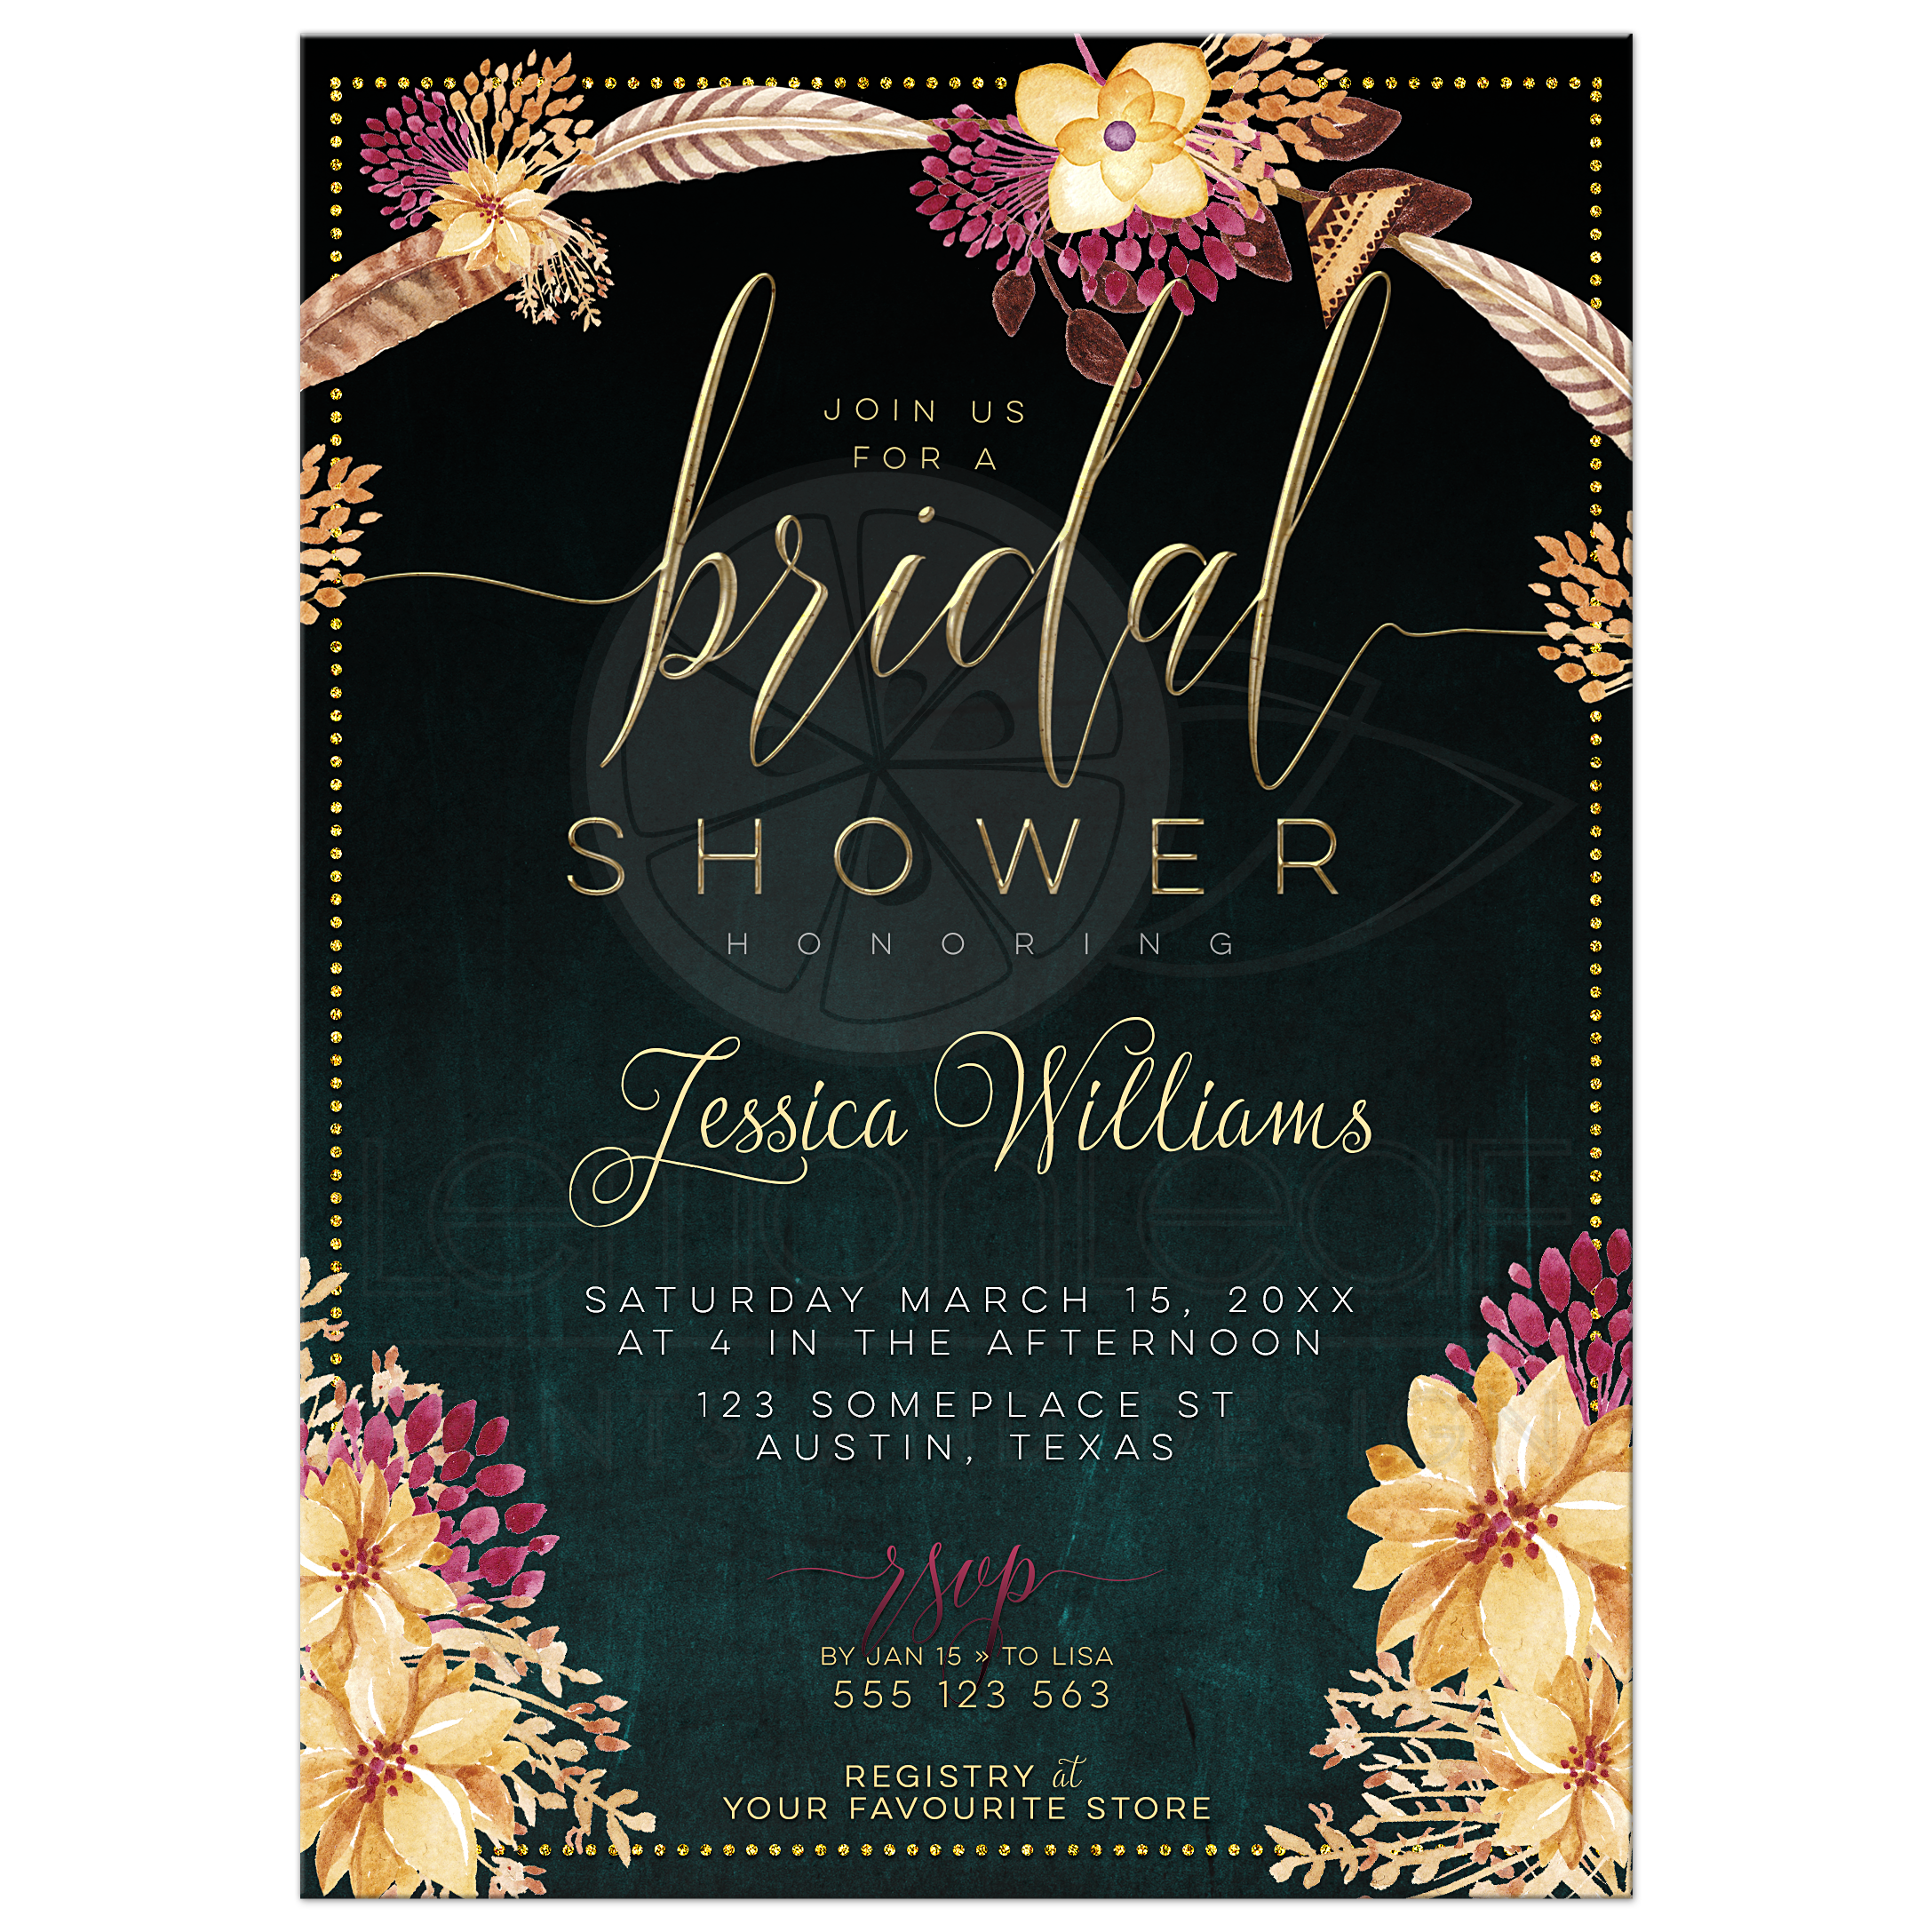 Bohemian bridal shower invite summer floral feathers bohemian bridal shower invite summer floral filmwisefo